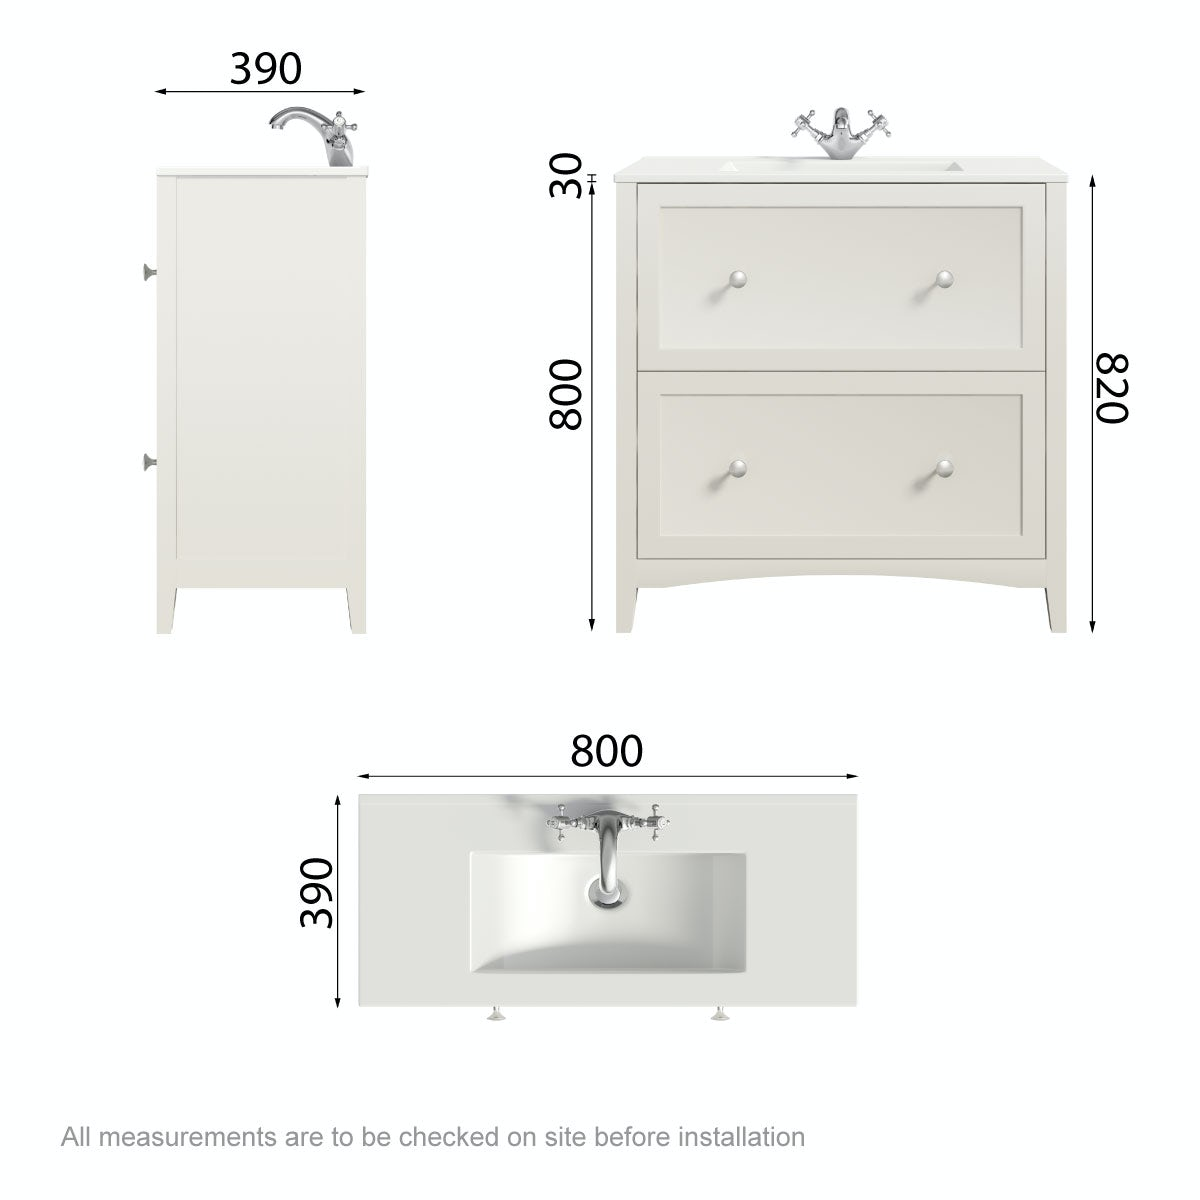 Dimensions for The Bath Co. Camberley satin ivory floor drawer unit with basin 800mm